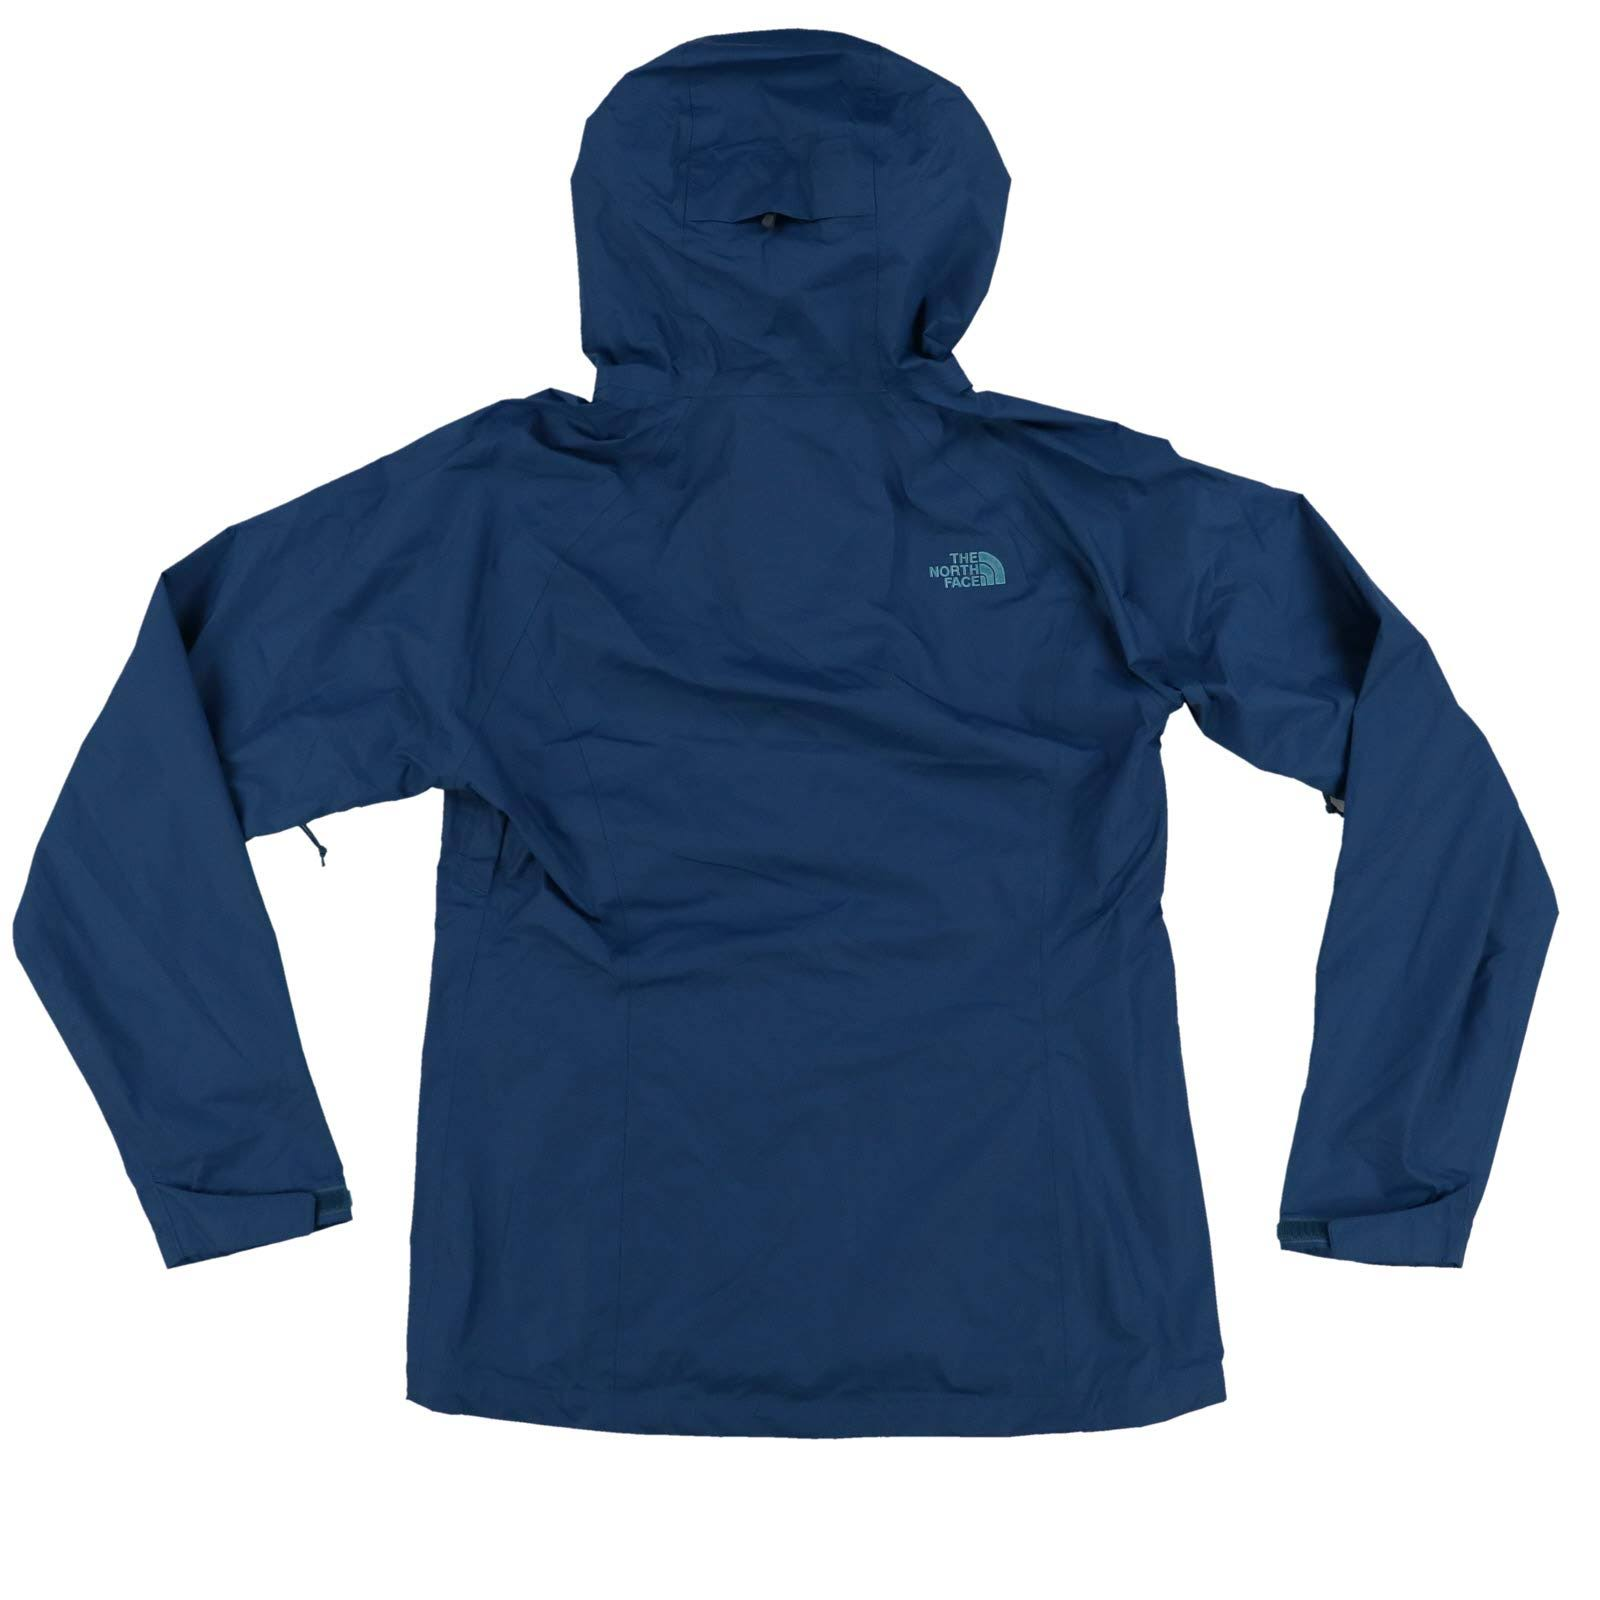 groß Monterey Jacket The Venture North Damen Blue Face wyqwUaSzFB